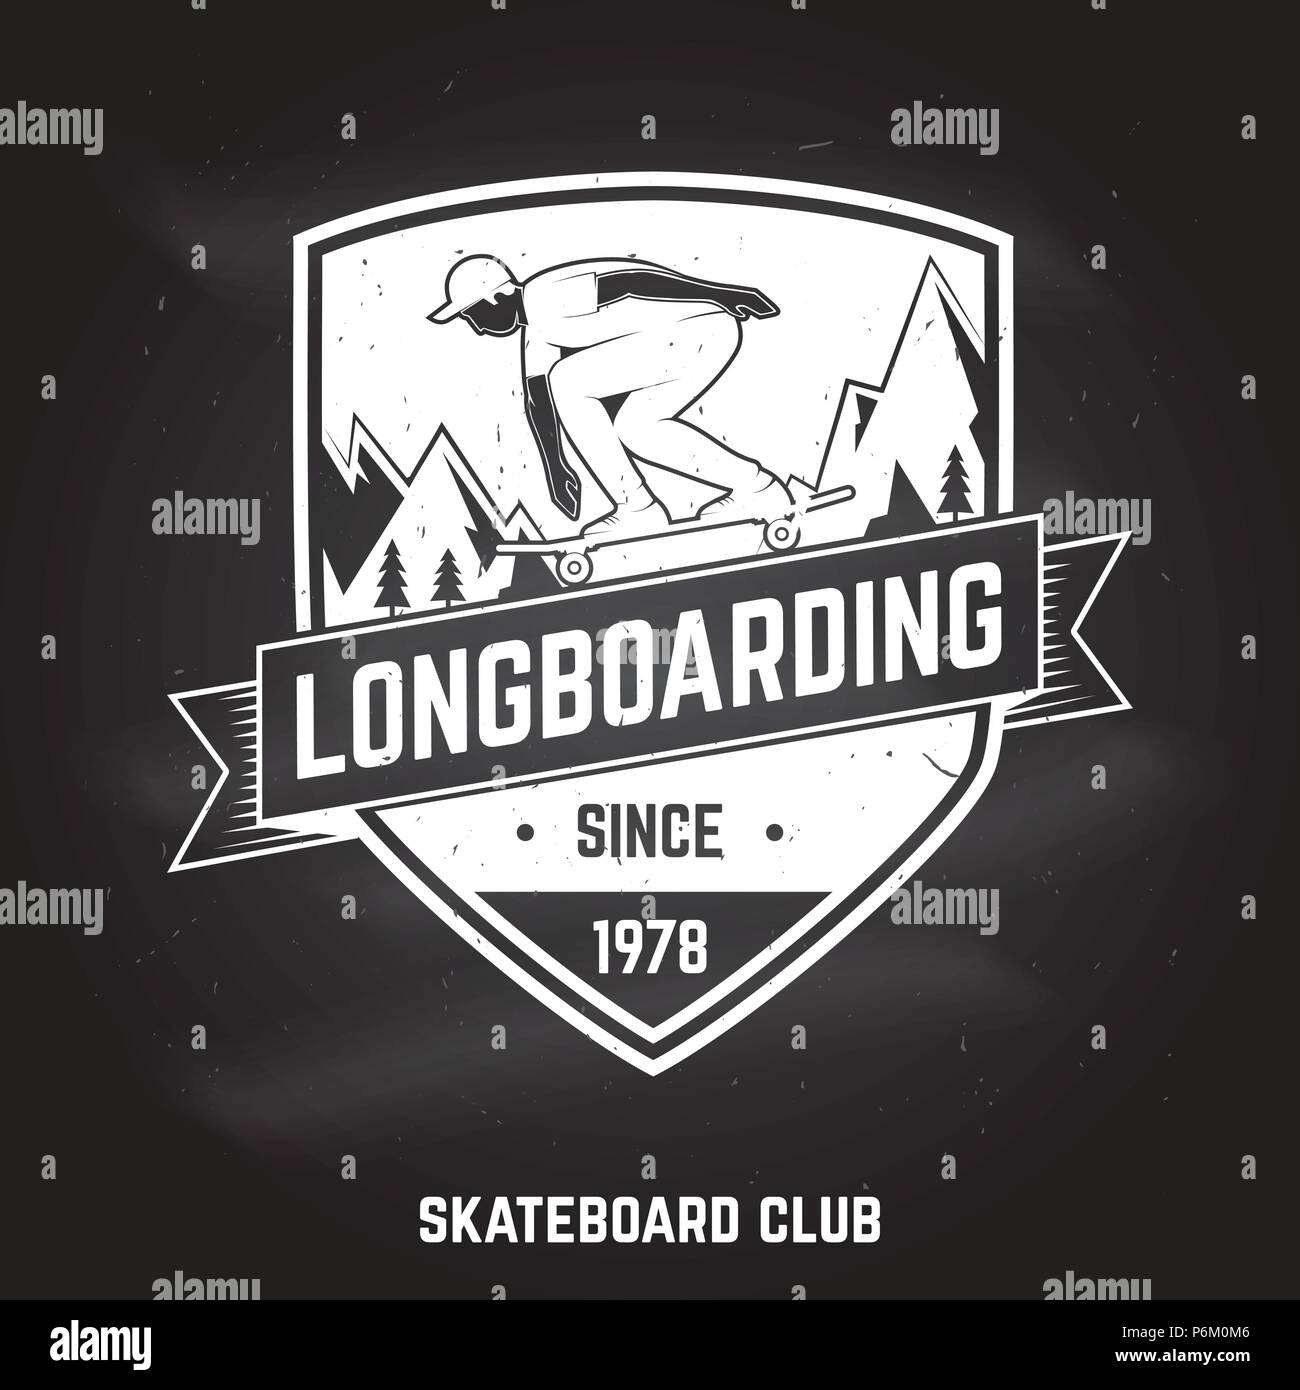 Longboarding sign on the chalkboard. Vector illustration. Extreme sport. For skate club emblems, signs and t-shirt design. Skateboard typography design with skateboarder on the longboard and text. Stock Vector